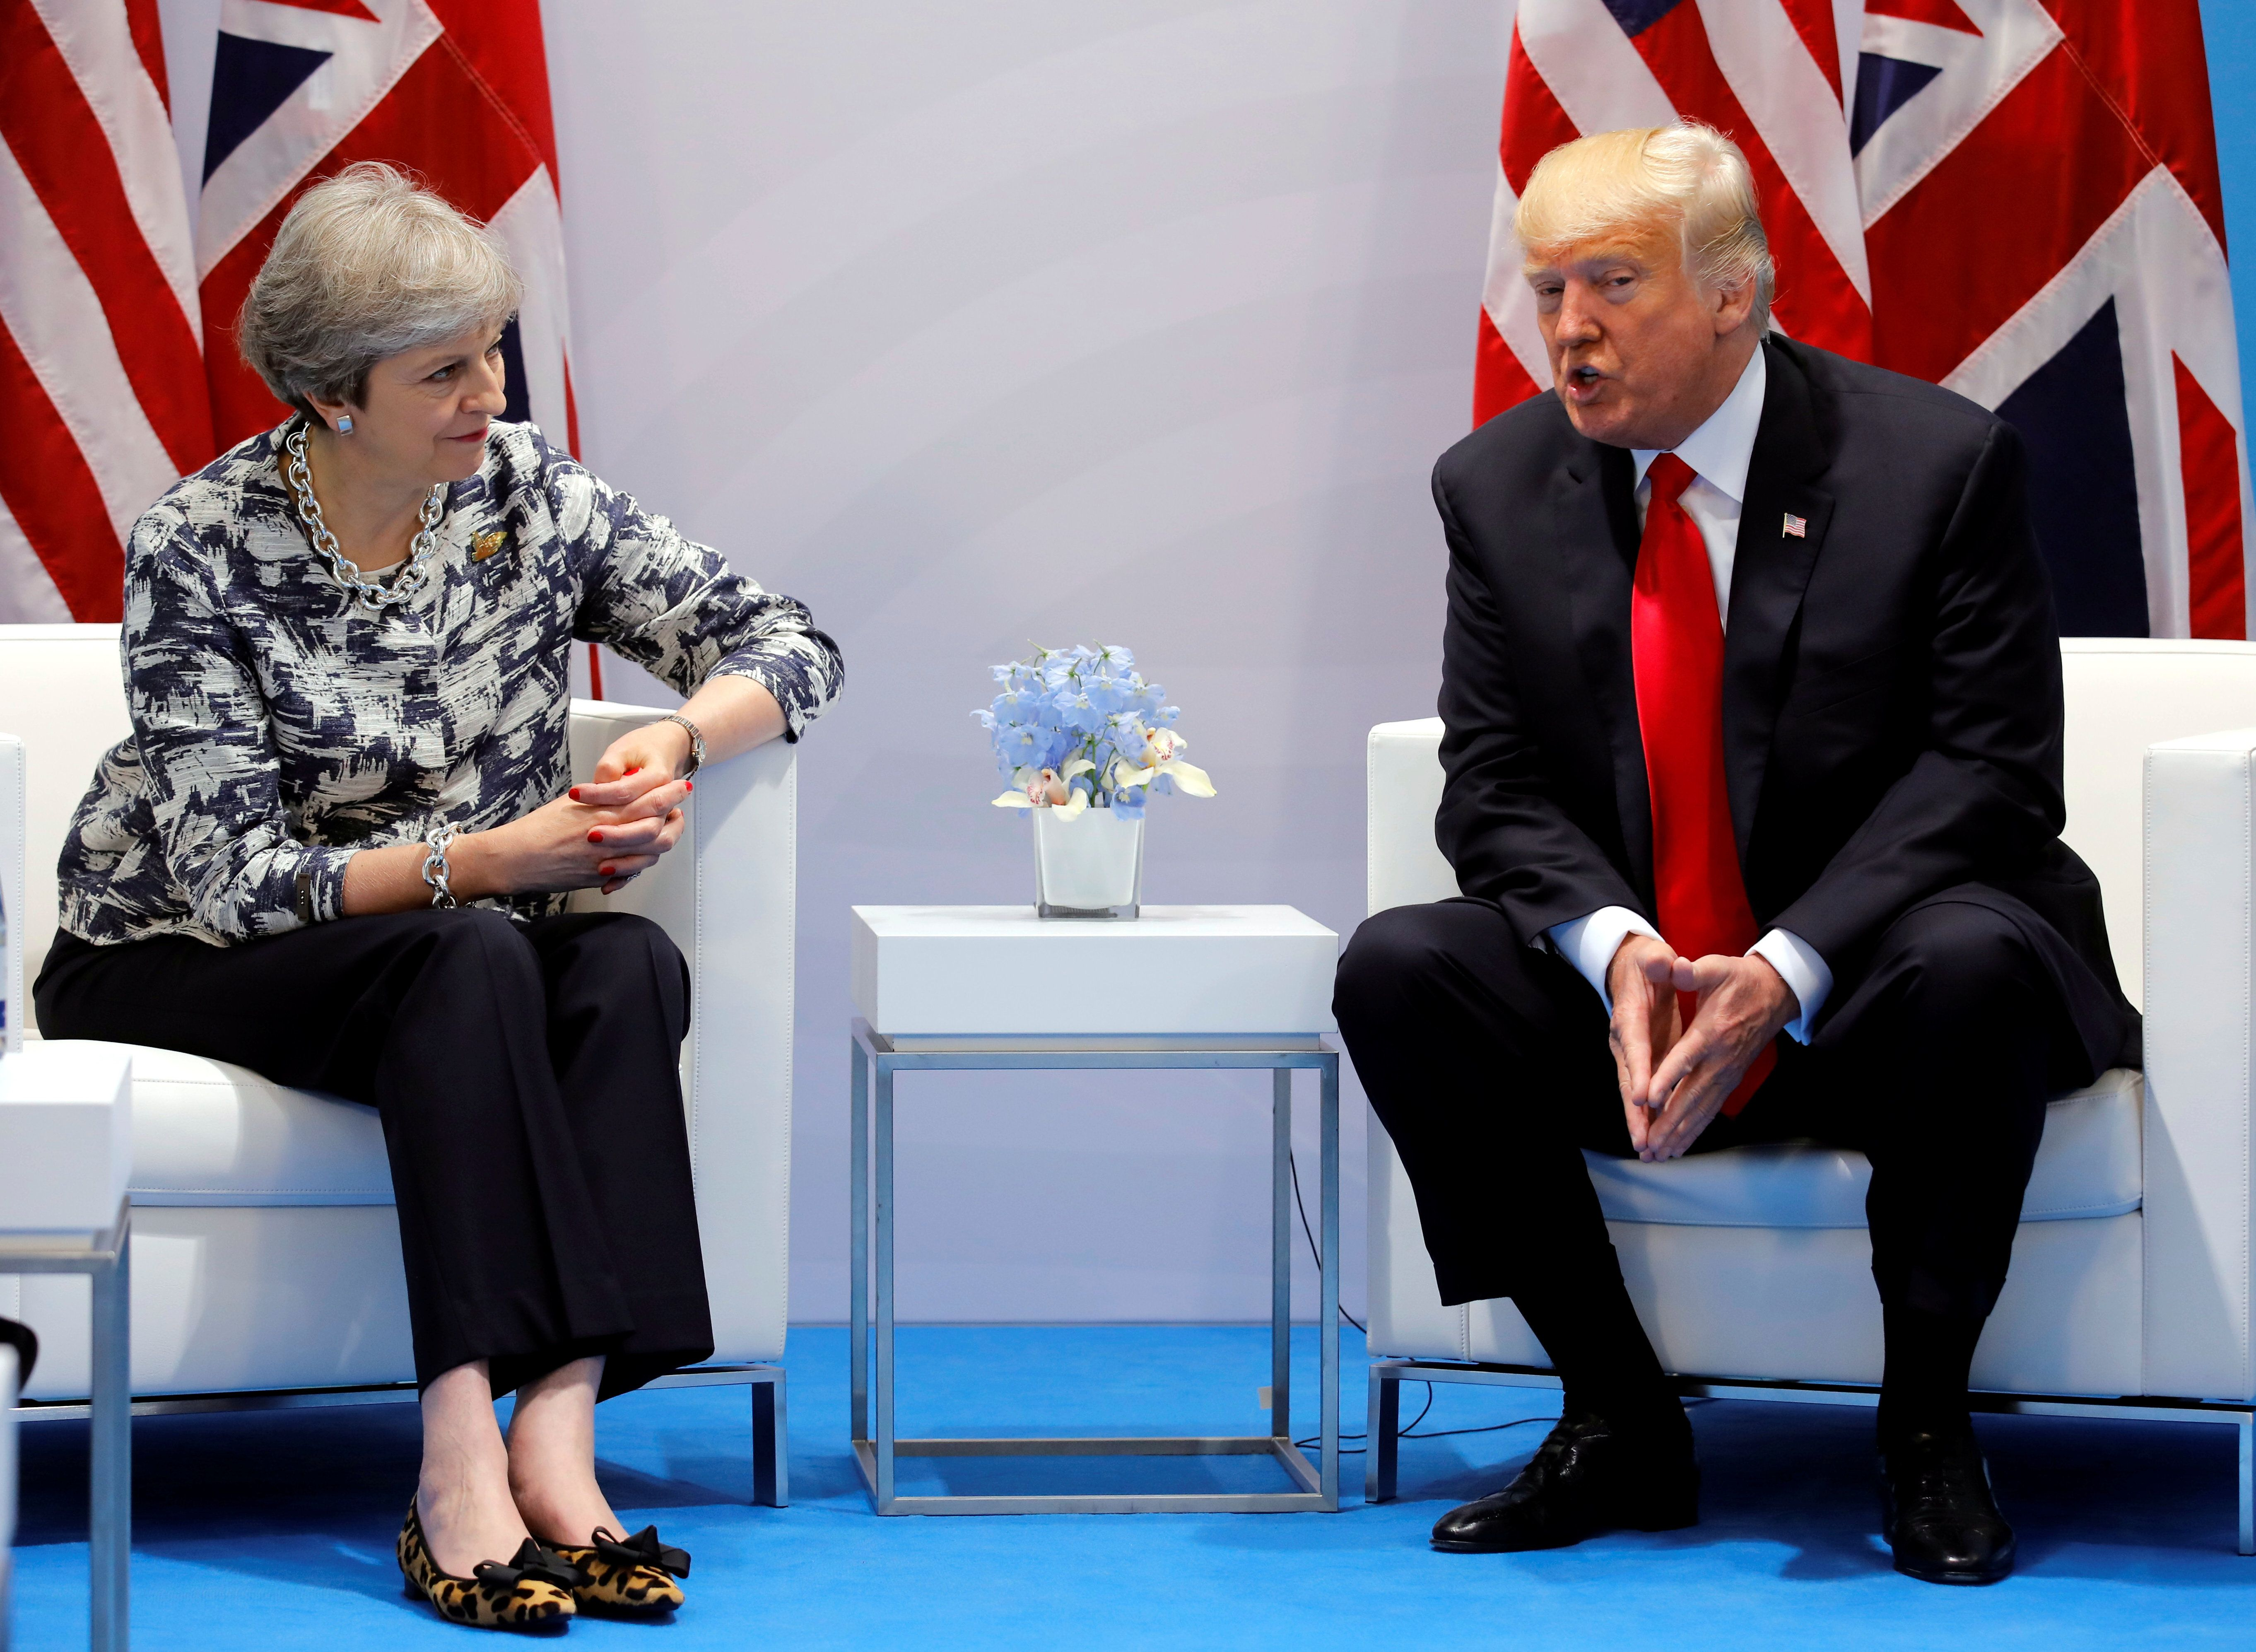 Britain's Prime Minister Theresa May talks with U.S. President Donald Trump during the G20 leaders summit in Hamburg, Germany July 8, 2017. REUTERS/Carlos Barria